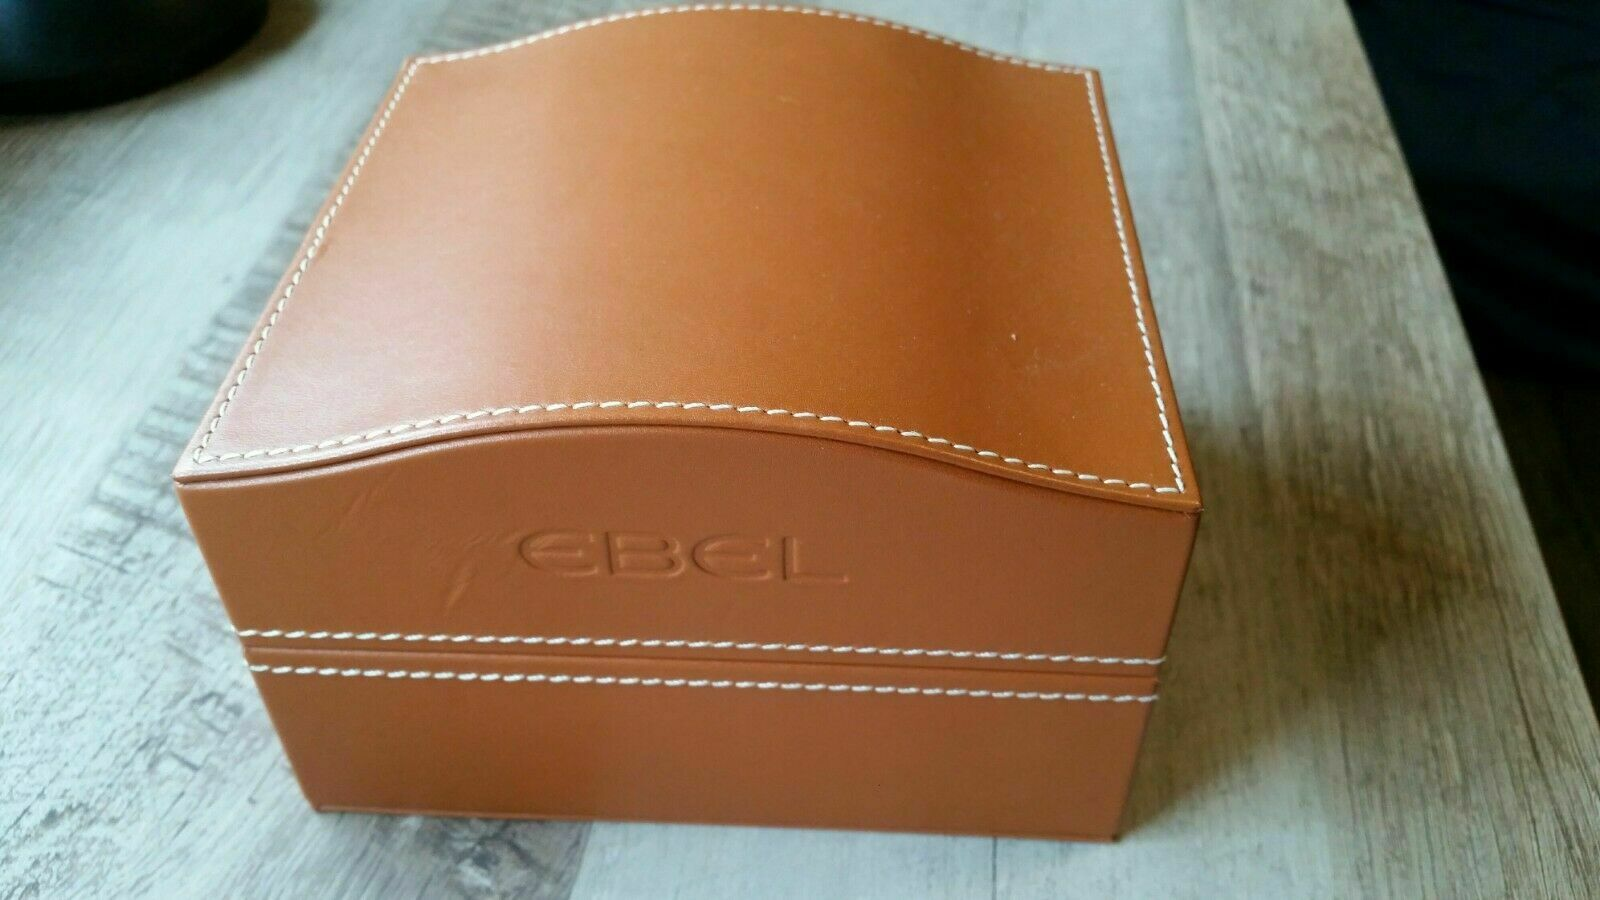 Ebel 1911 BTR Auto Chronograph Stainless Steel Watch